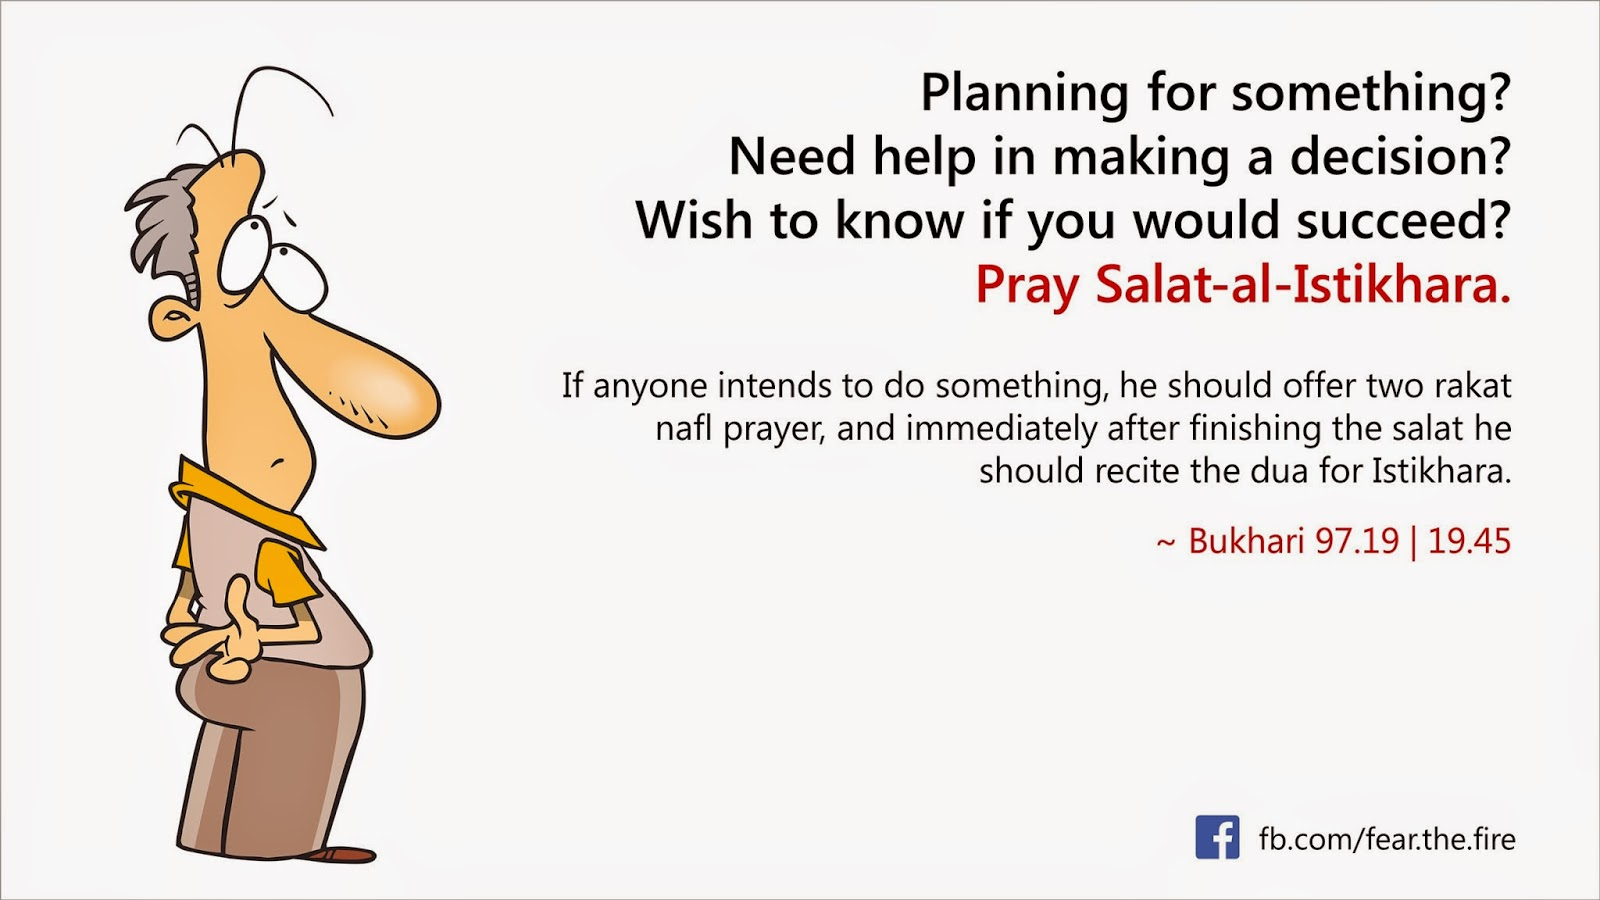 Salat al-Istikhara. The prayer seeking of Allah's guidance before taking a major decision.